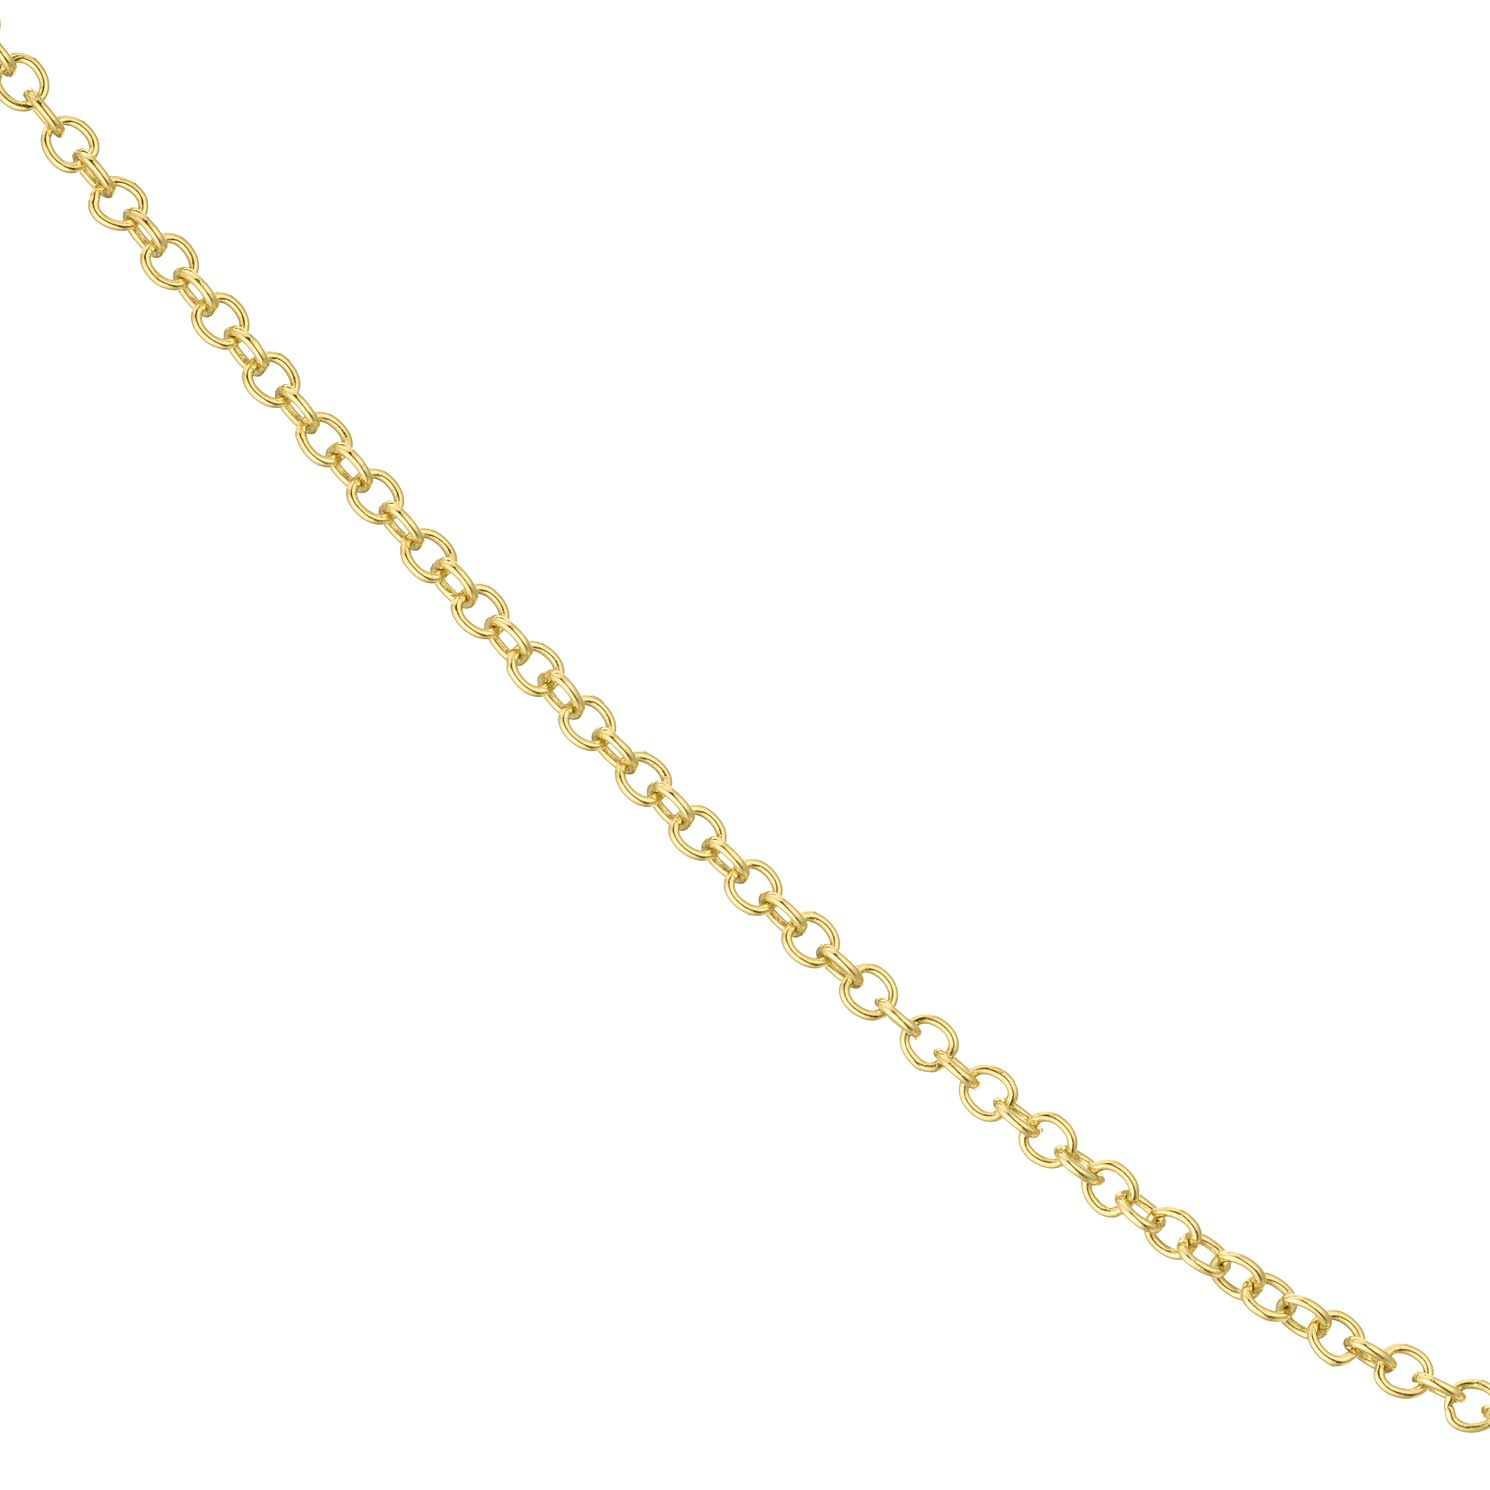 18ct Yellow Gold 18 inches Trace Chain Necklace - Product number 4681924